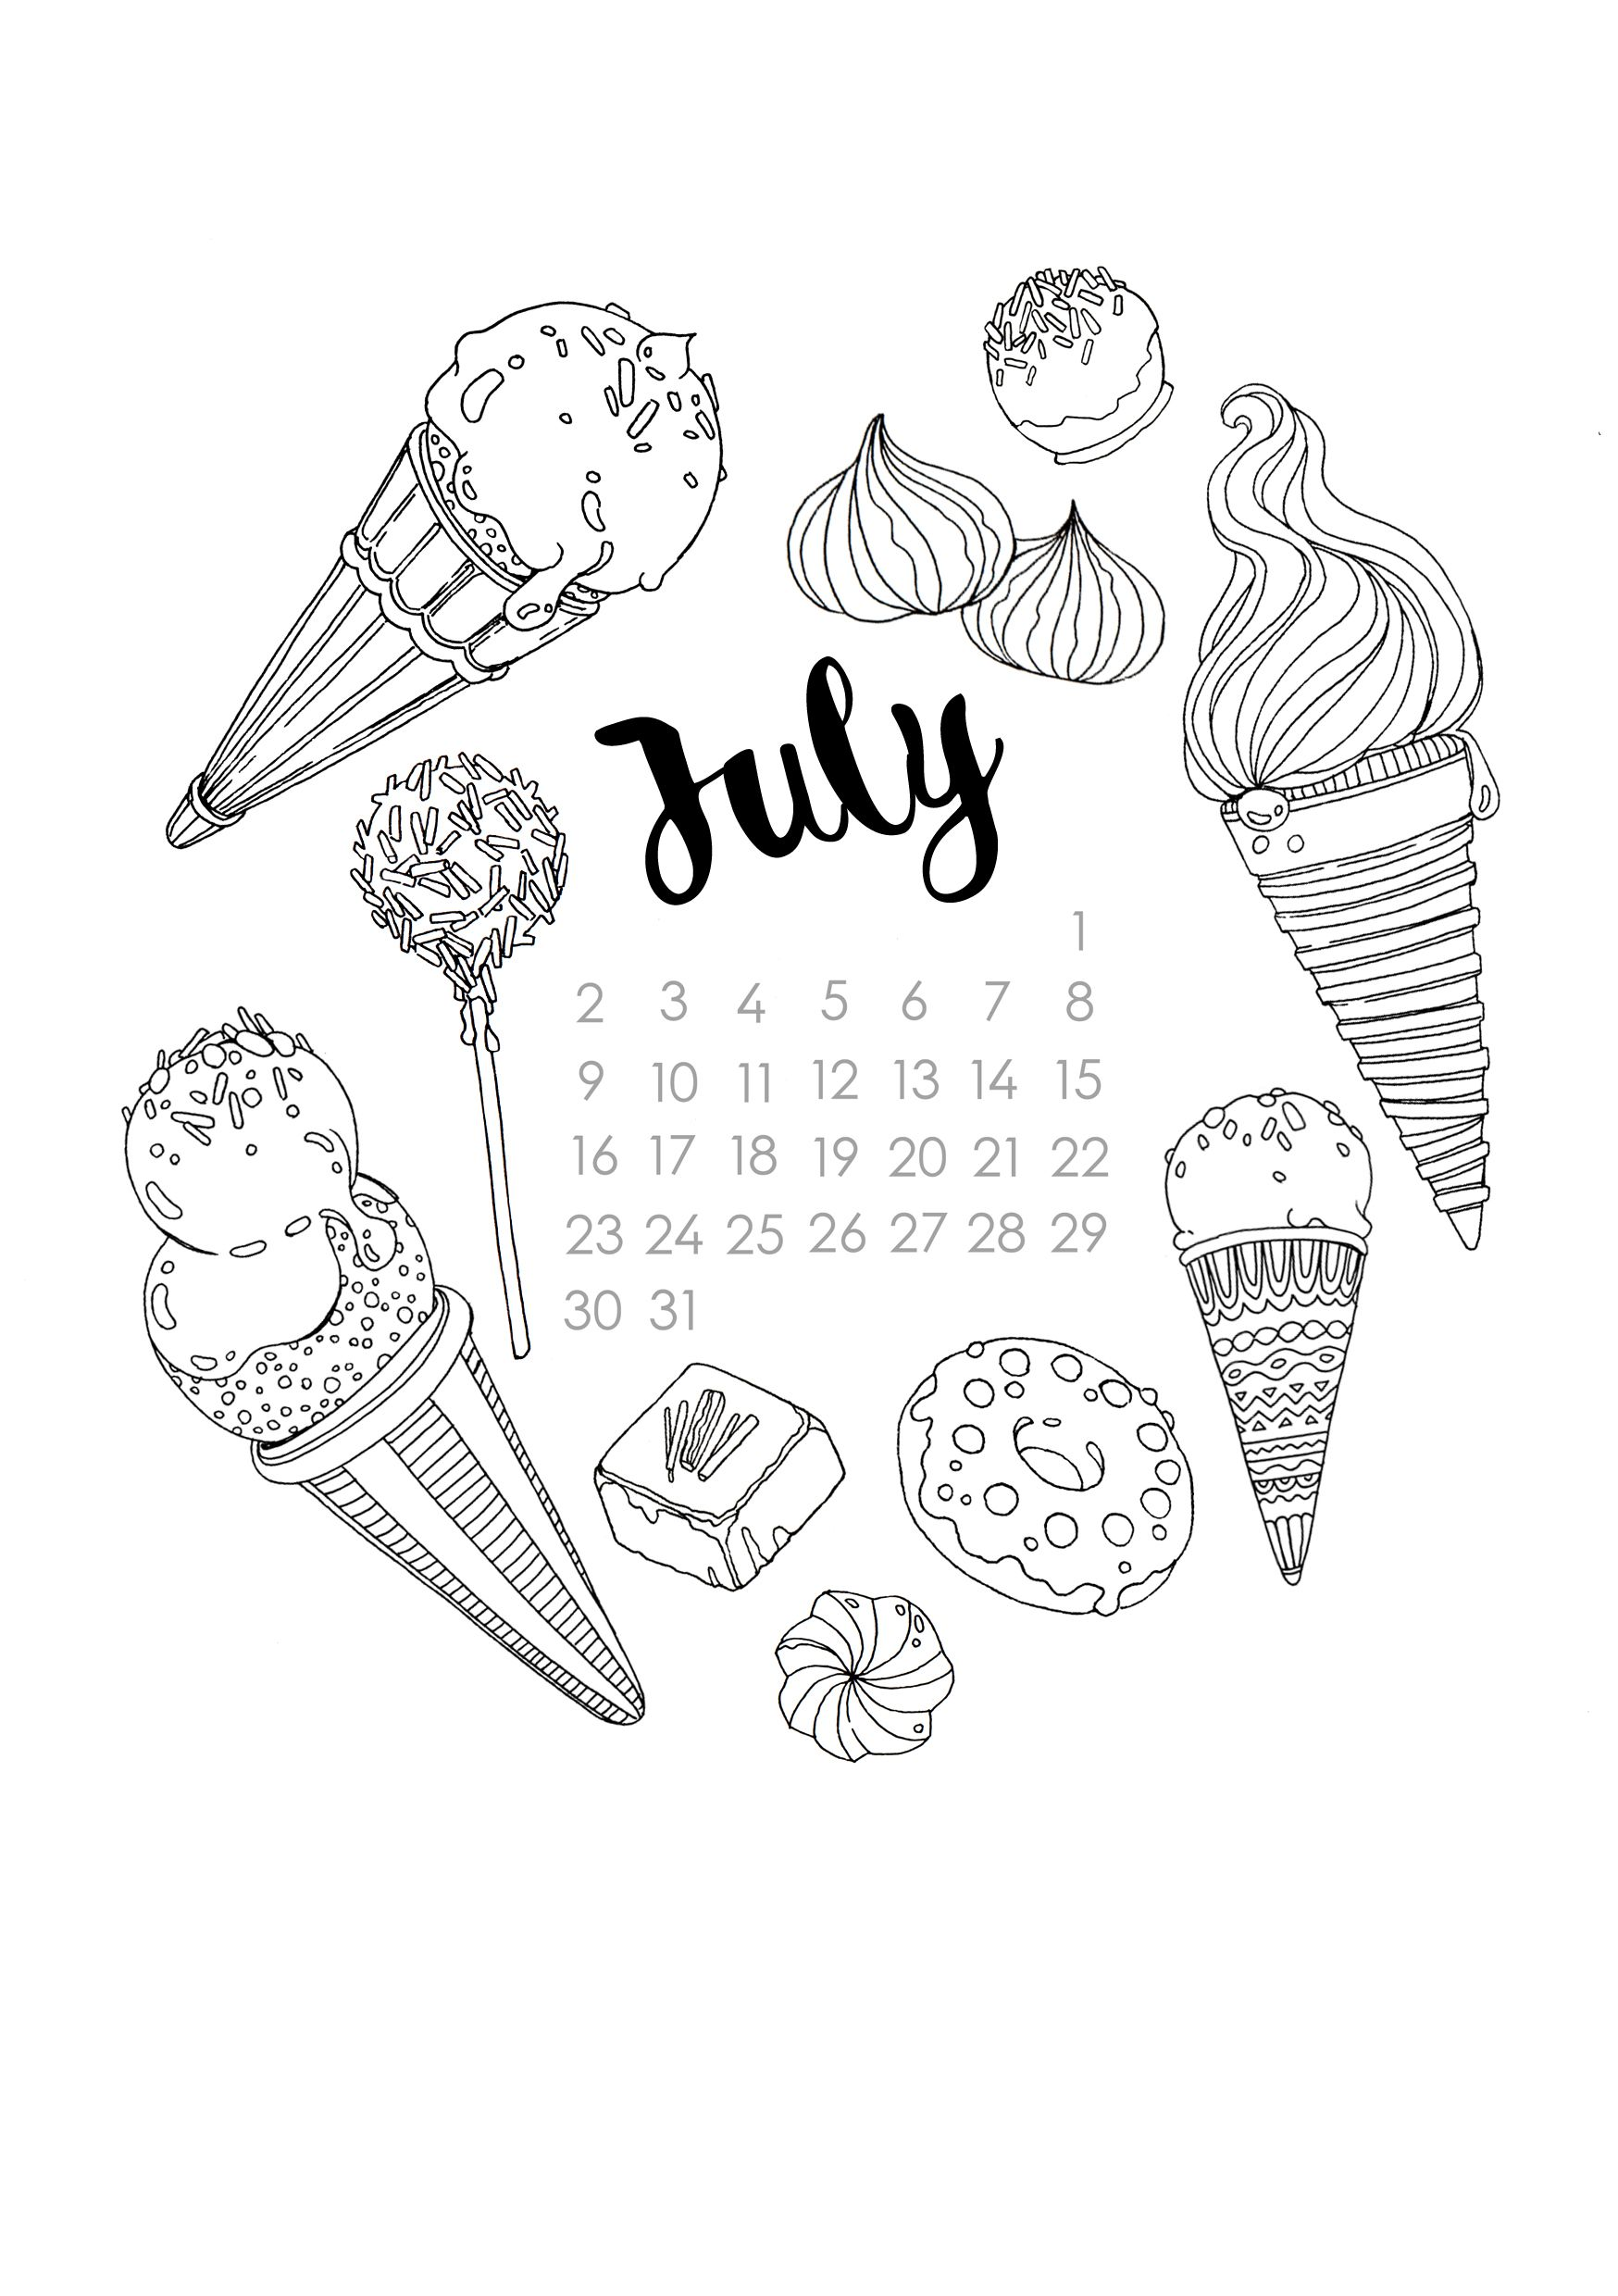 Summery Sweet Coloring Page With Lots Of Ice Cream Cones Candy Chocolates And T Bullet Journal Cover Ideas Bullet Journal Themes Bullet Journal Ideas Pages